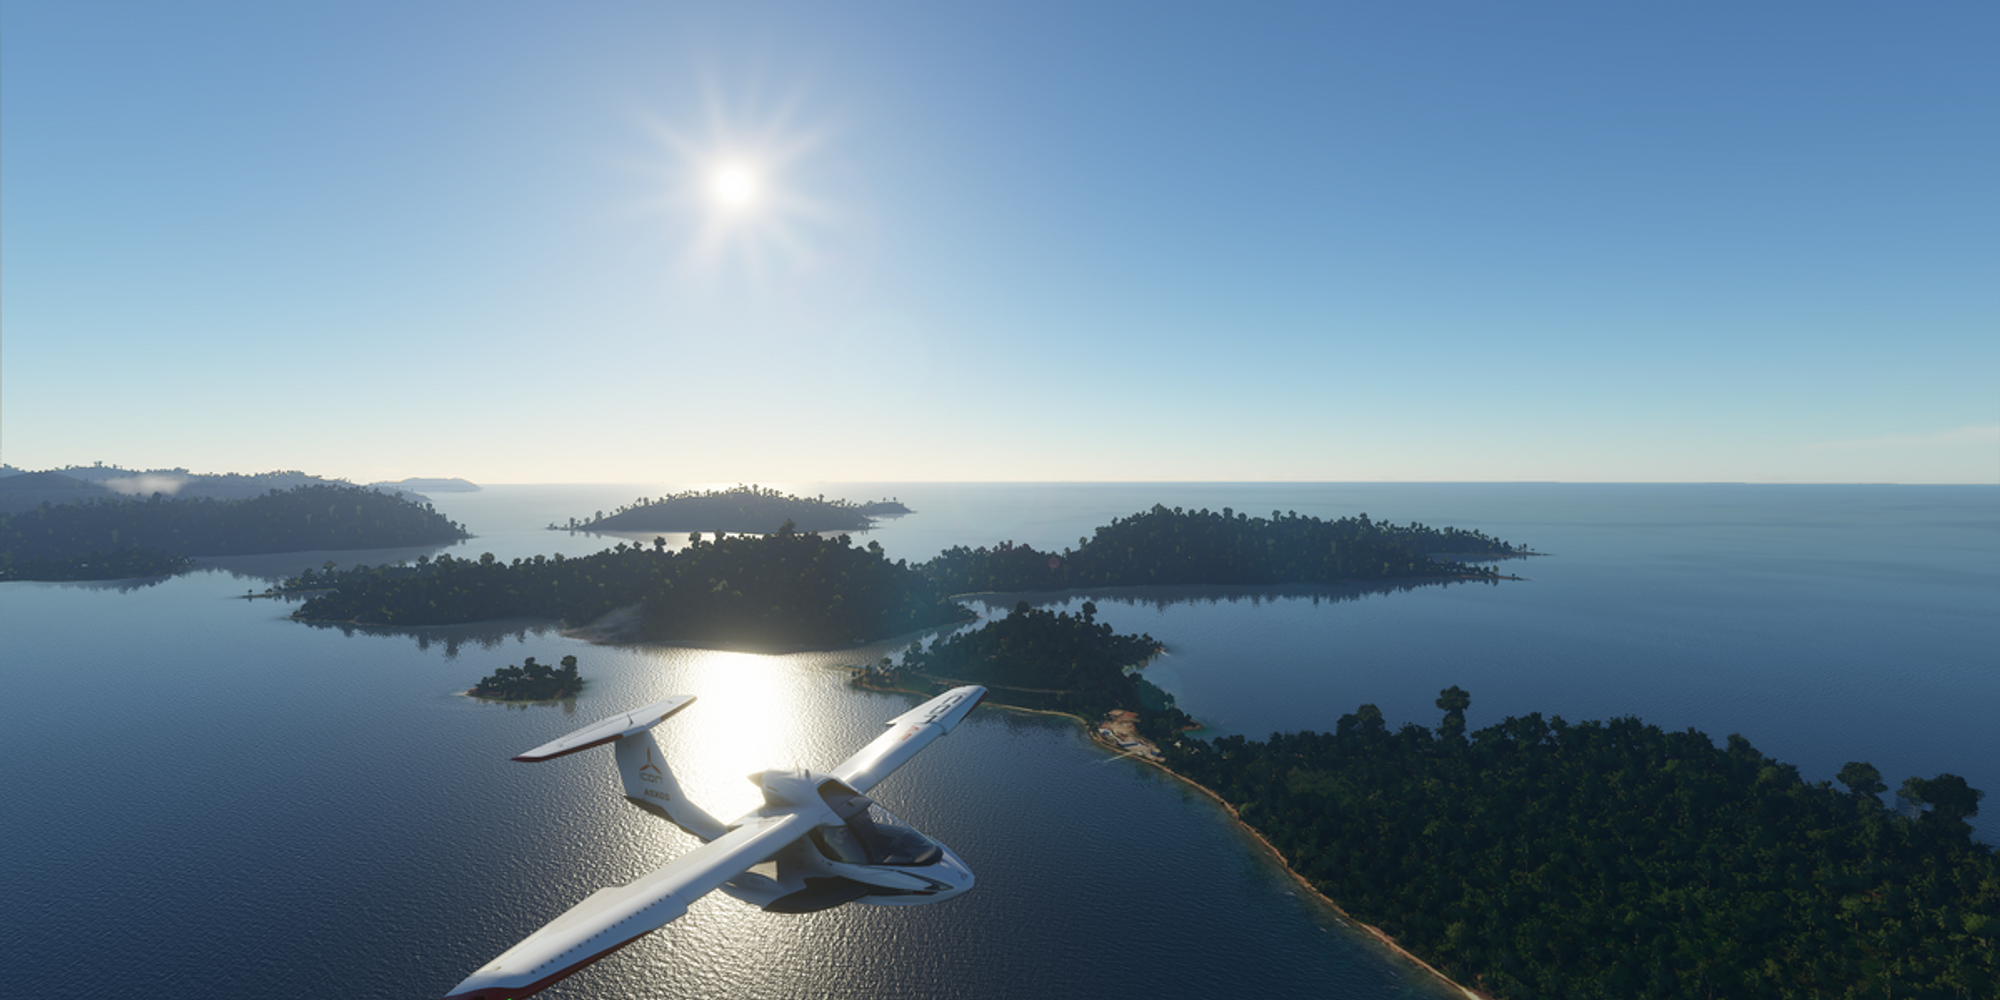 Why Microsoft's new Flight Simulator should make Google and Amazon nervous